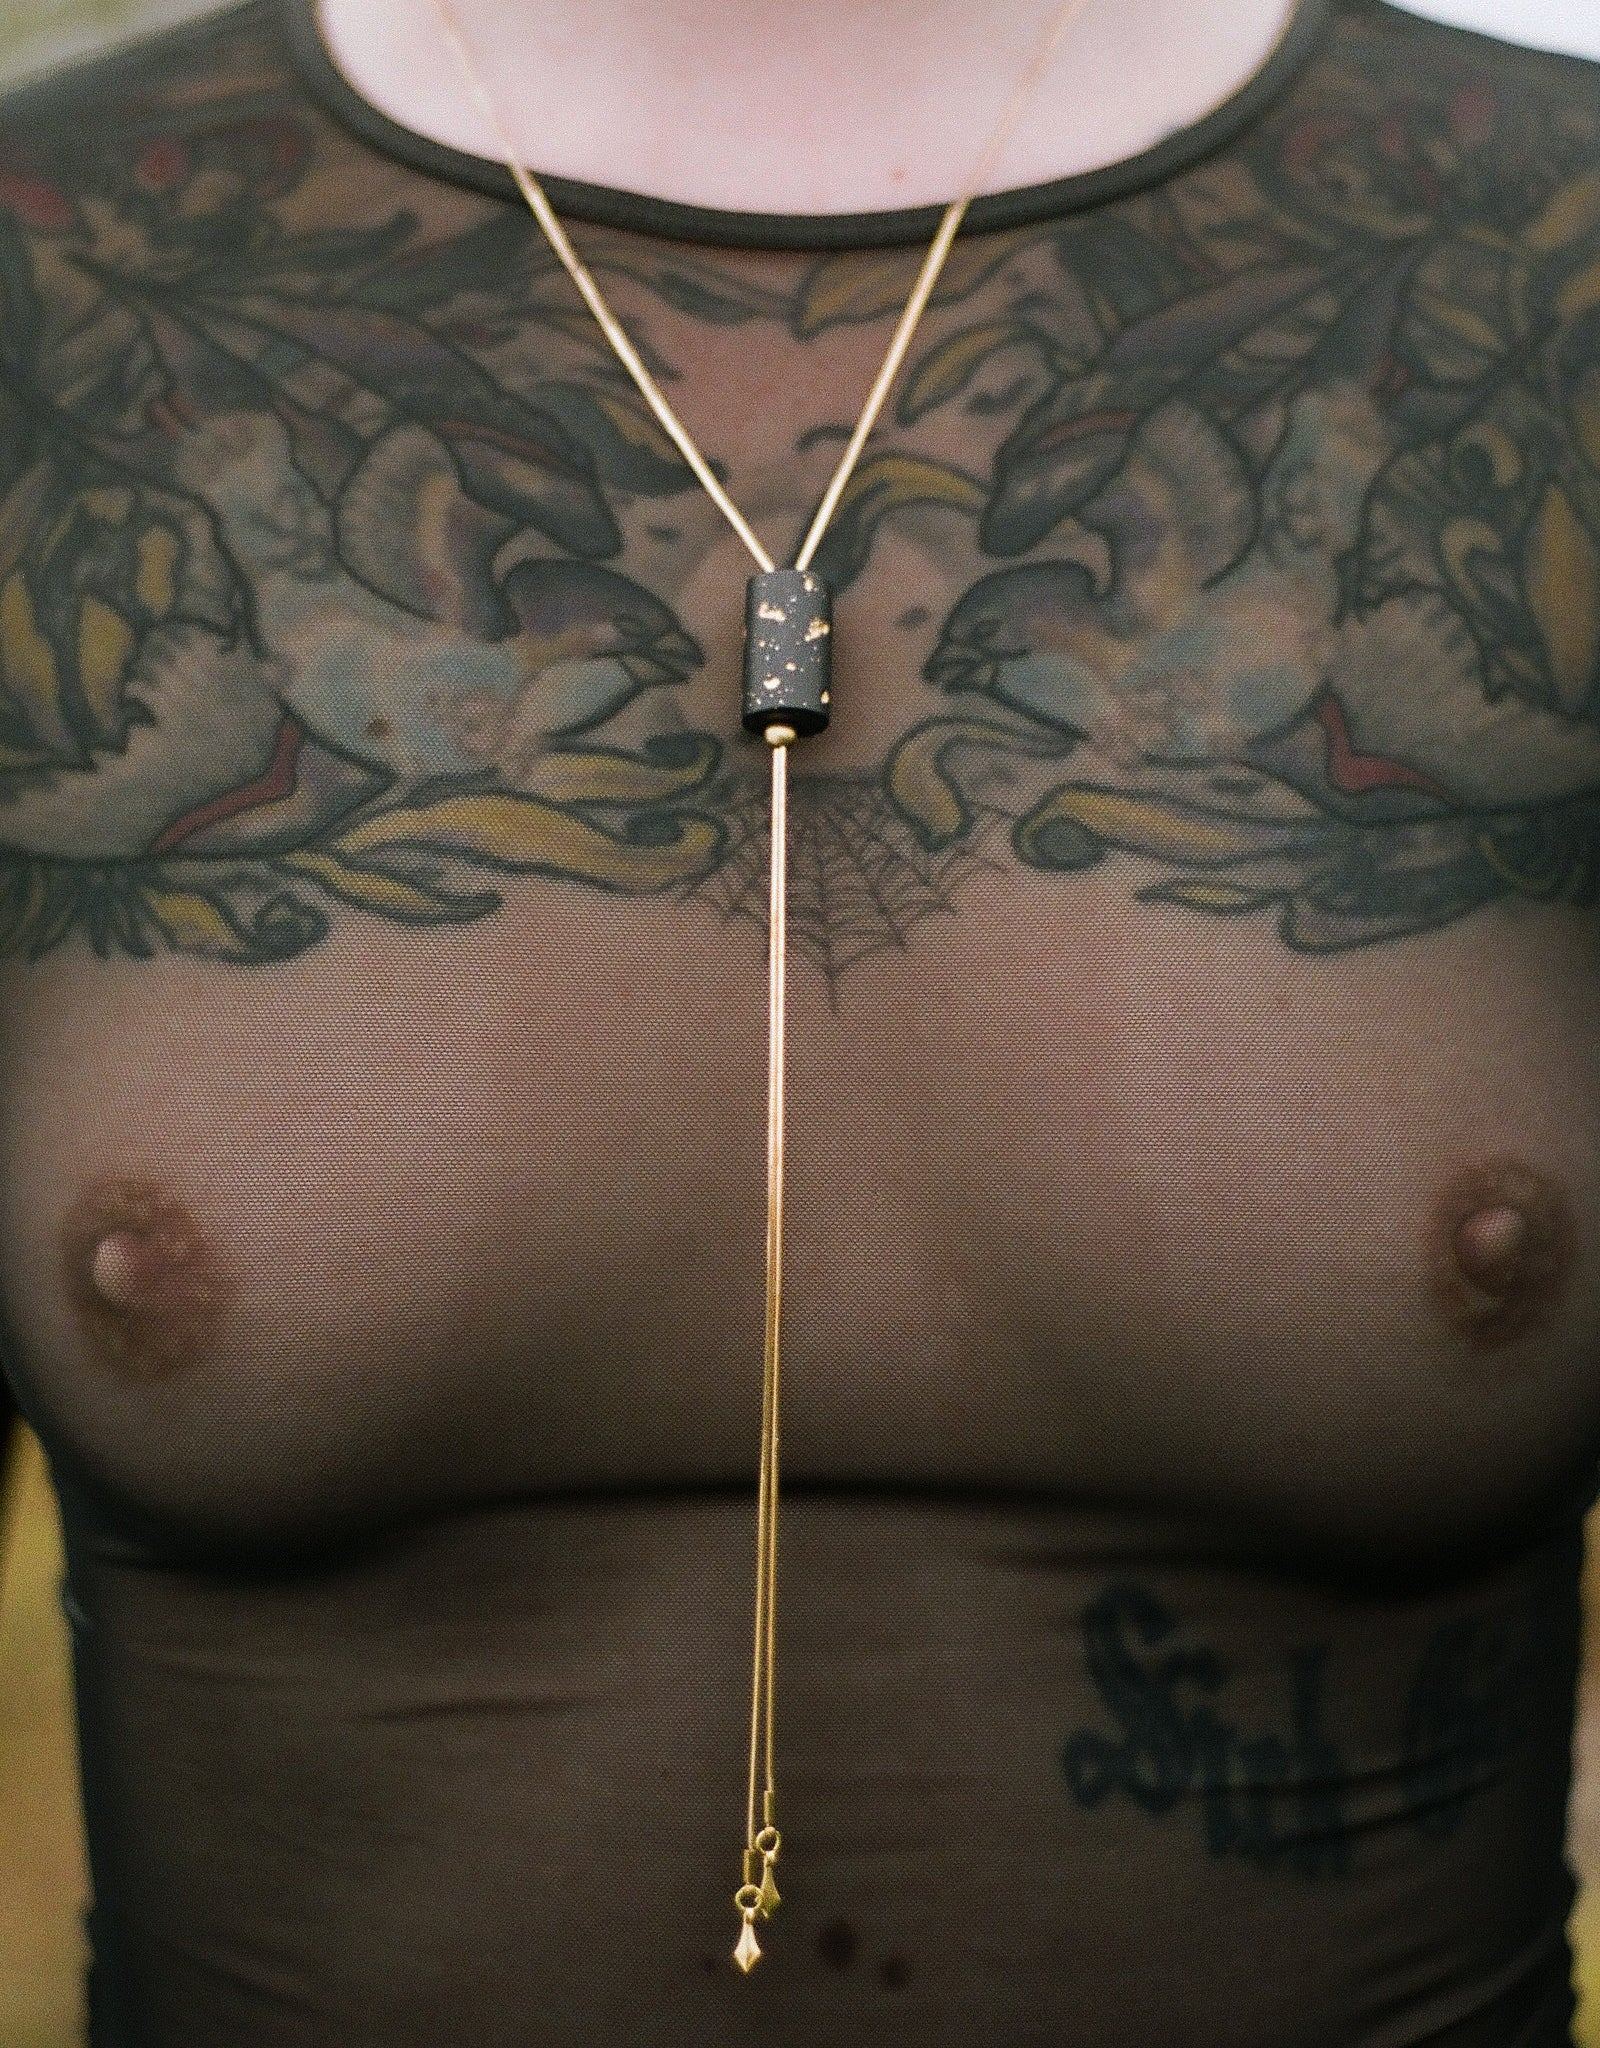 Gold foil bolo tie necklace on a model